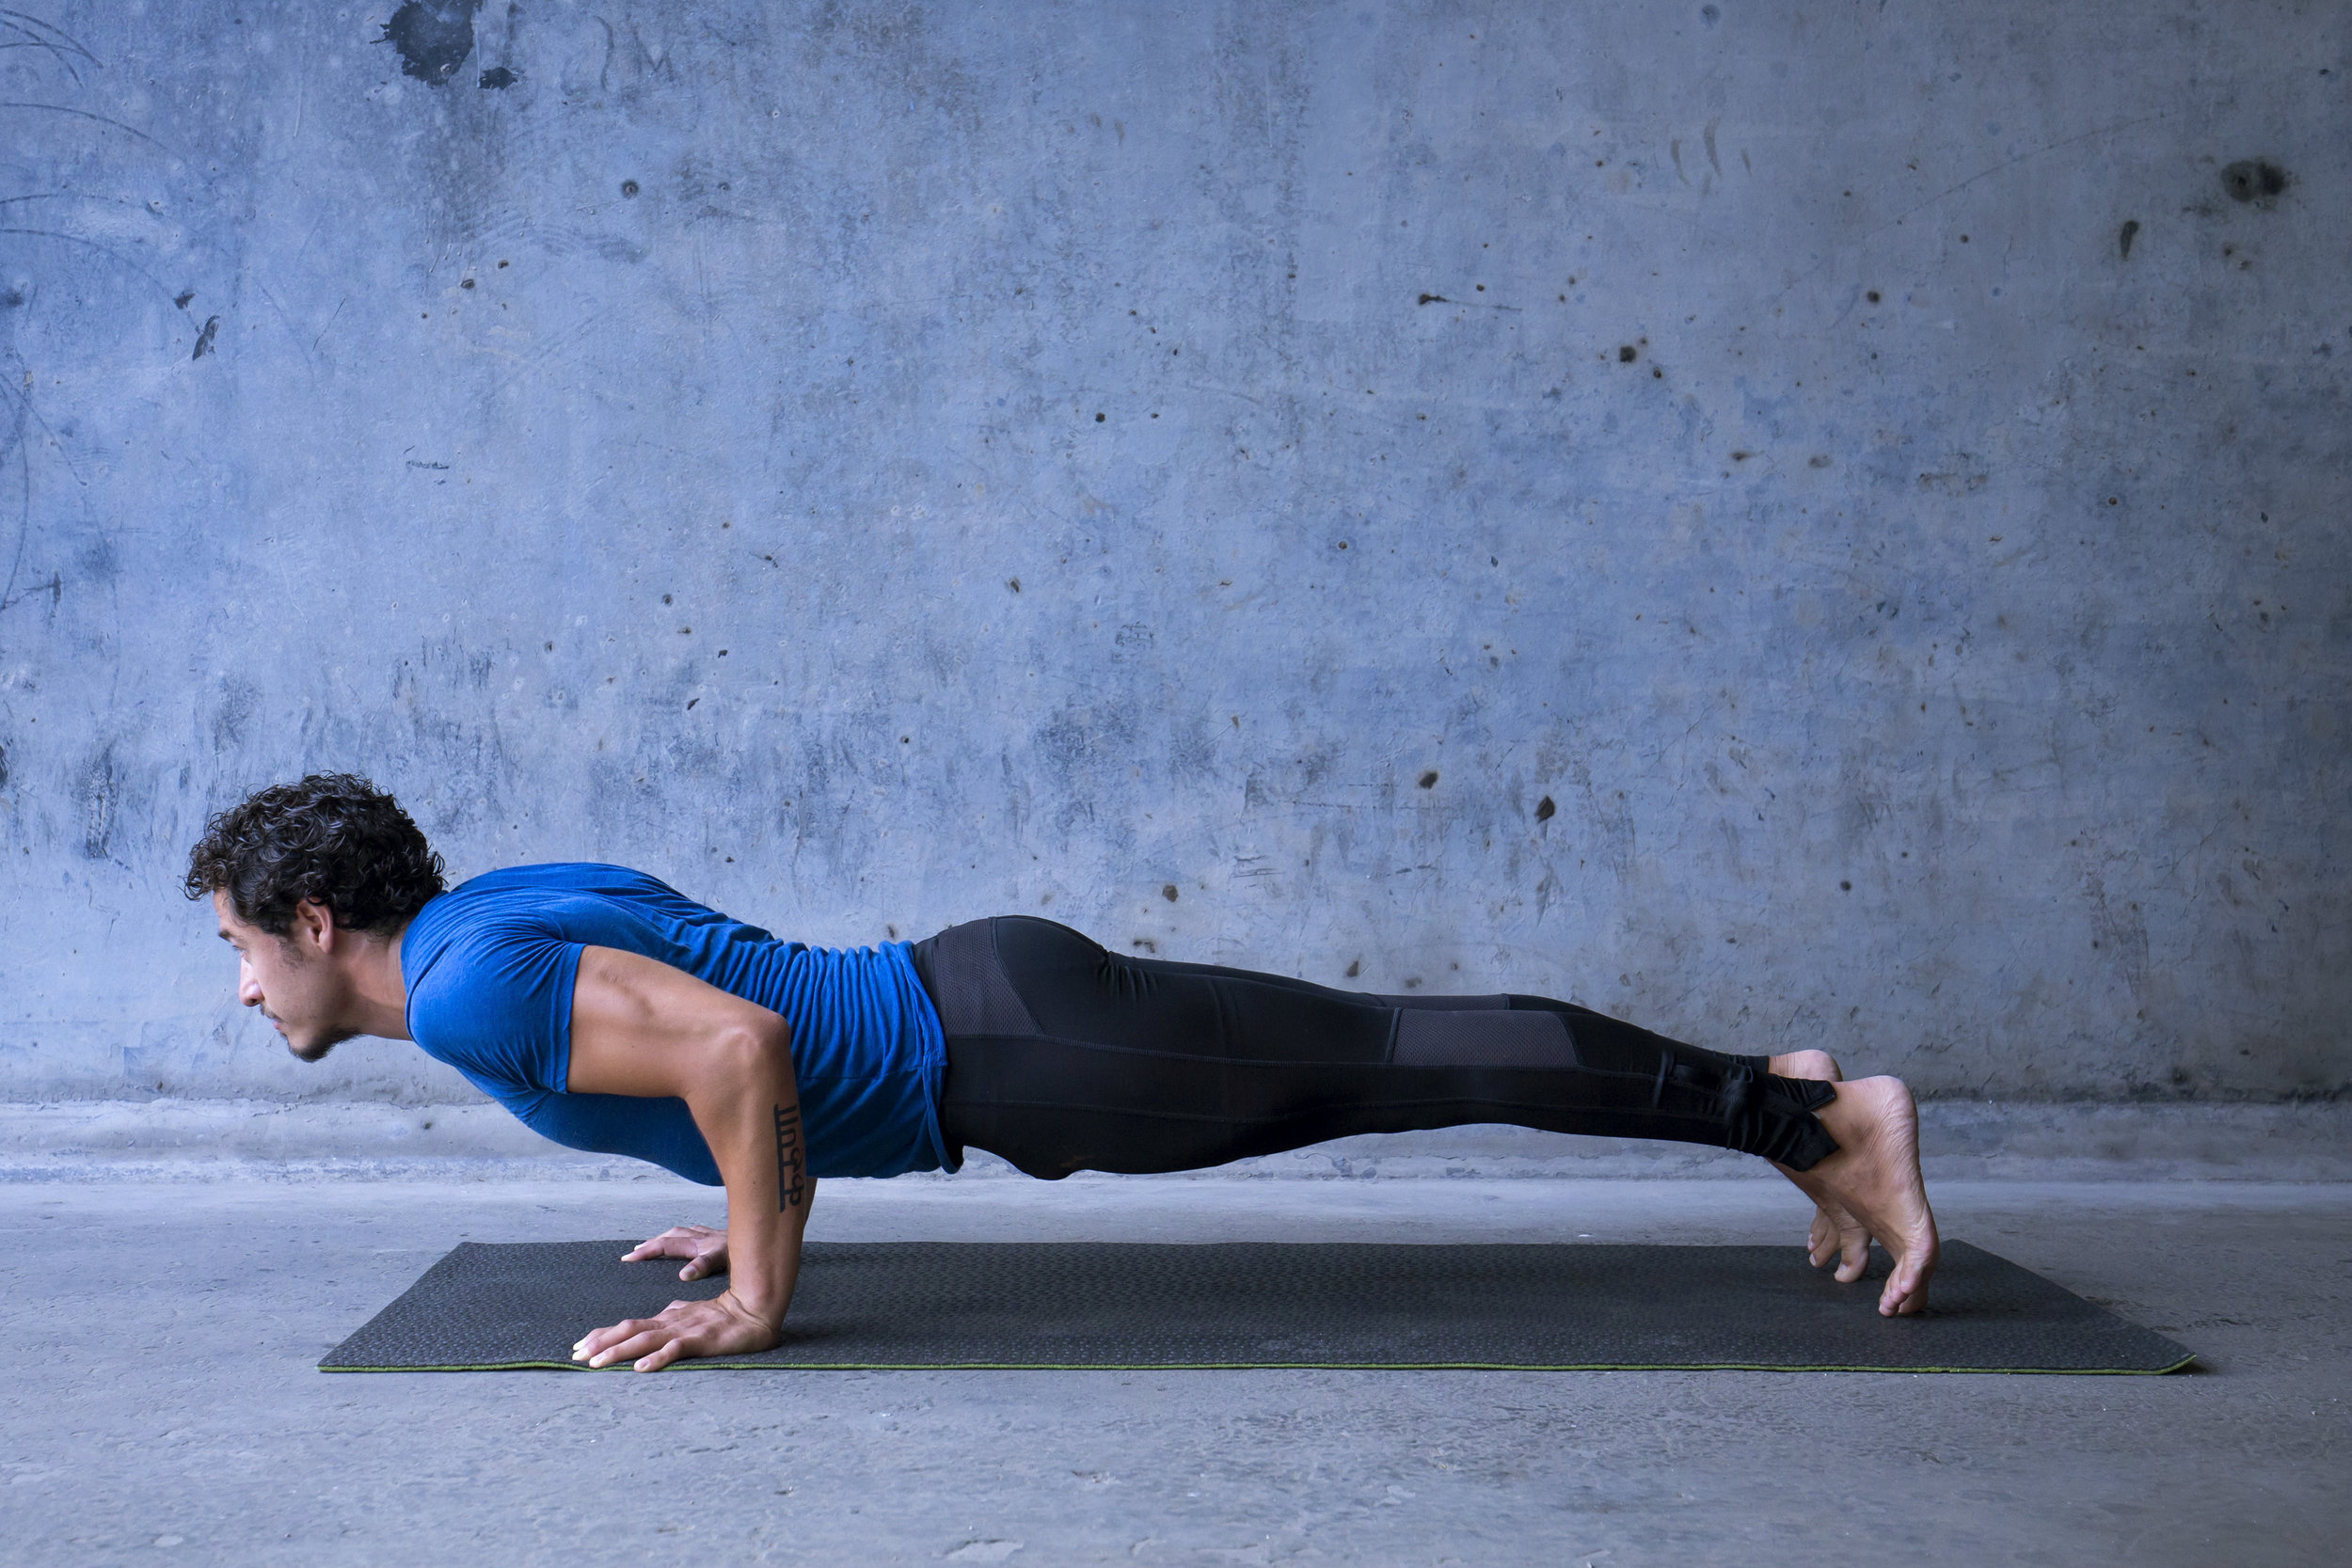 MUSCLE EDUCATION - Each person develops muscle strength differently. During hands on workouts, our personal trainer will teach each individual how to strengthen their body for their athletic hobbies.